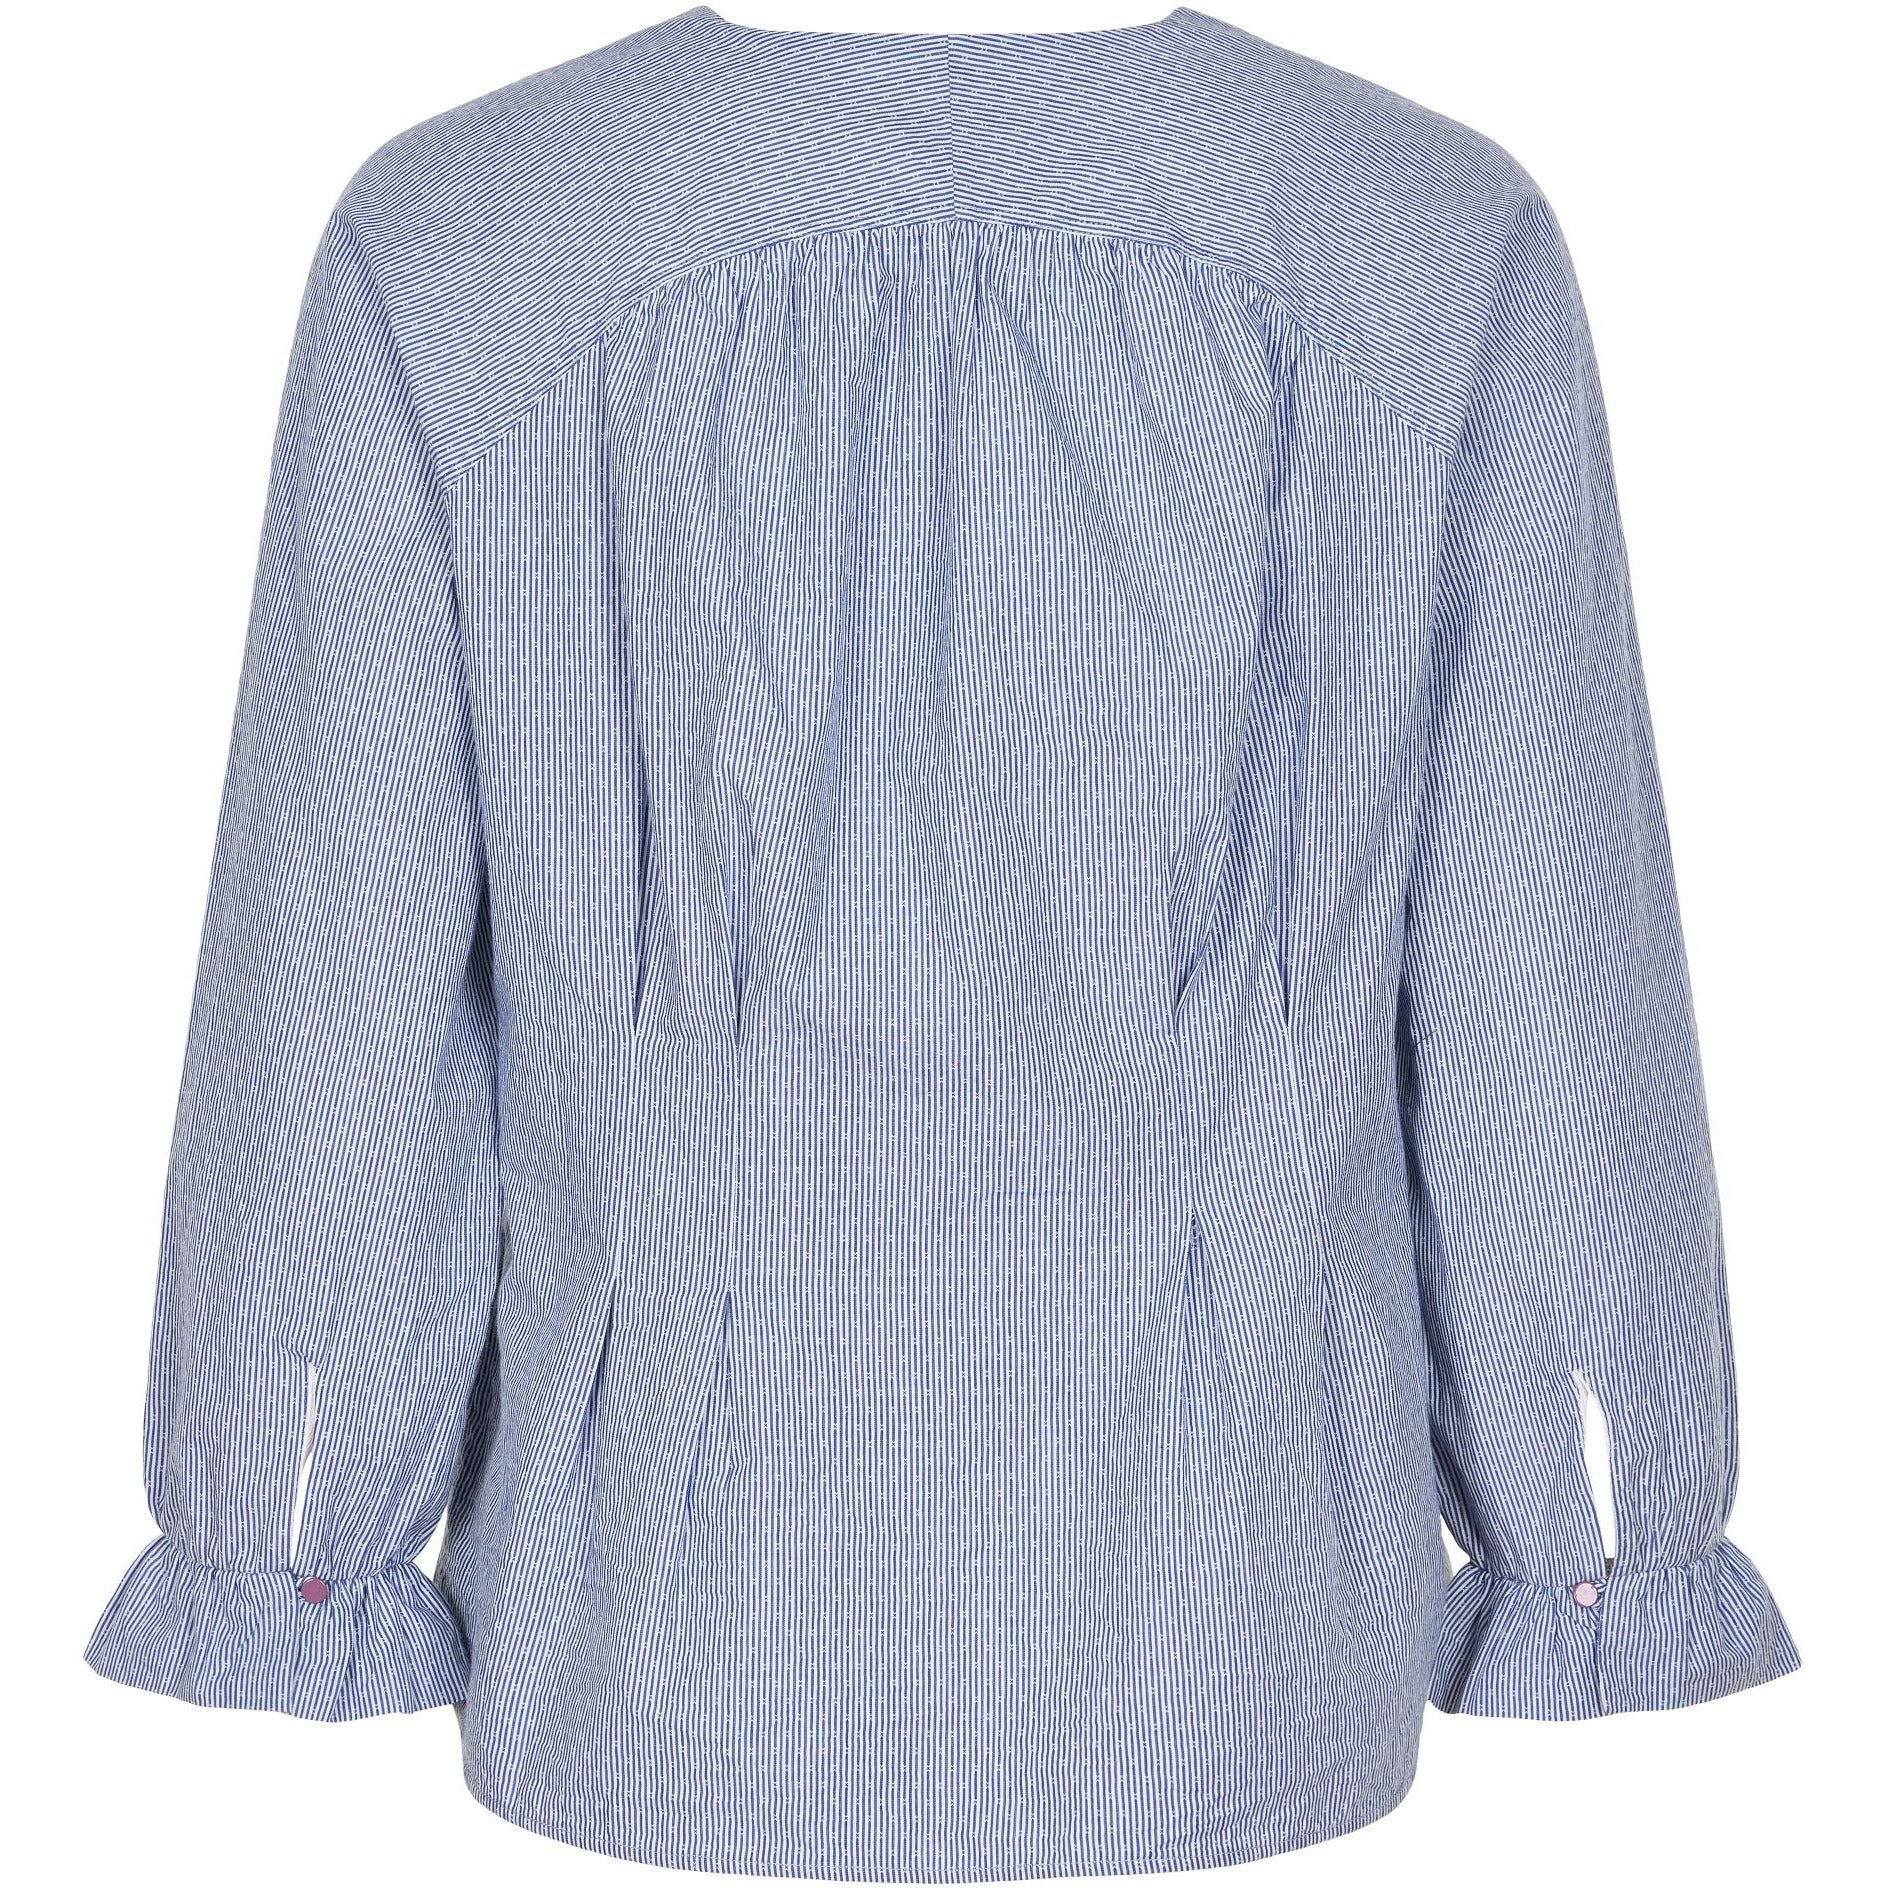 Noa Noa Art Blue Blouse